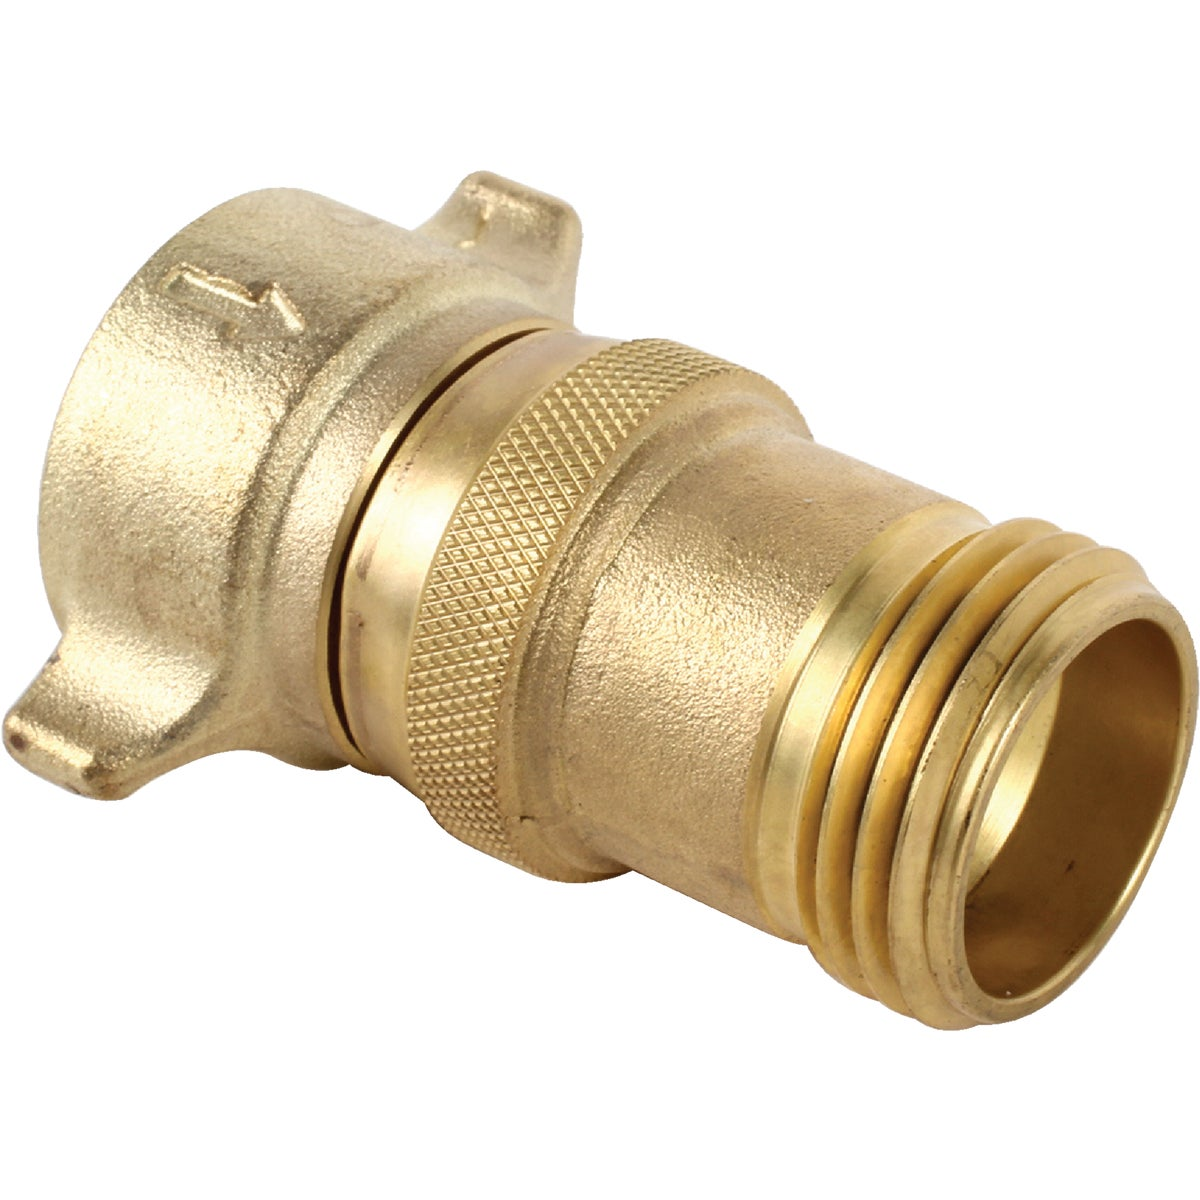 "3/4"" BRASS REGULATOR"